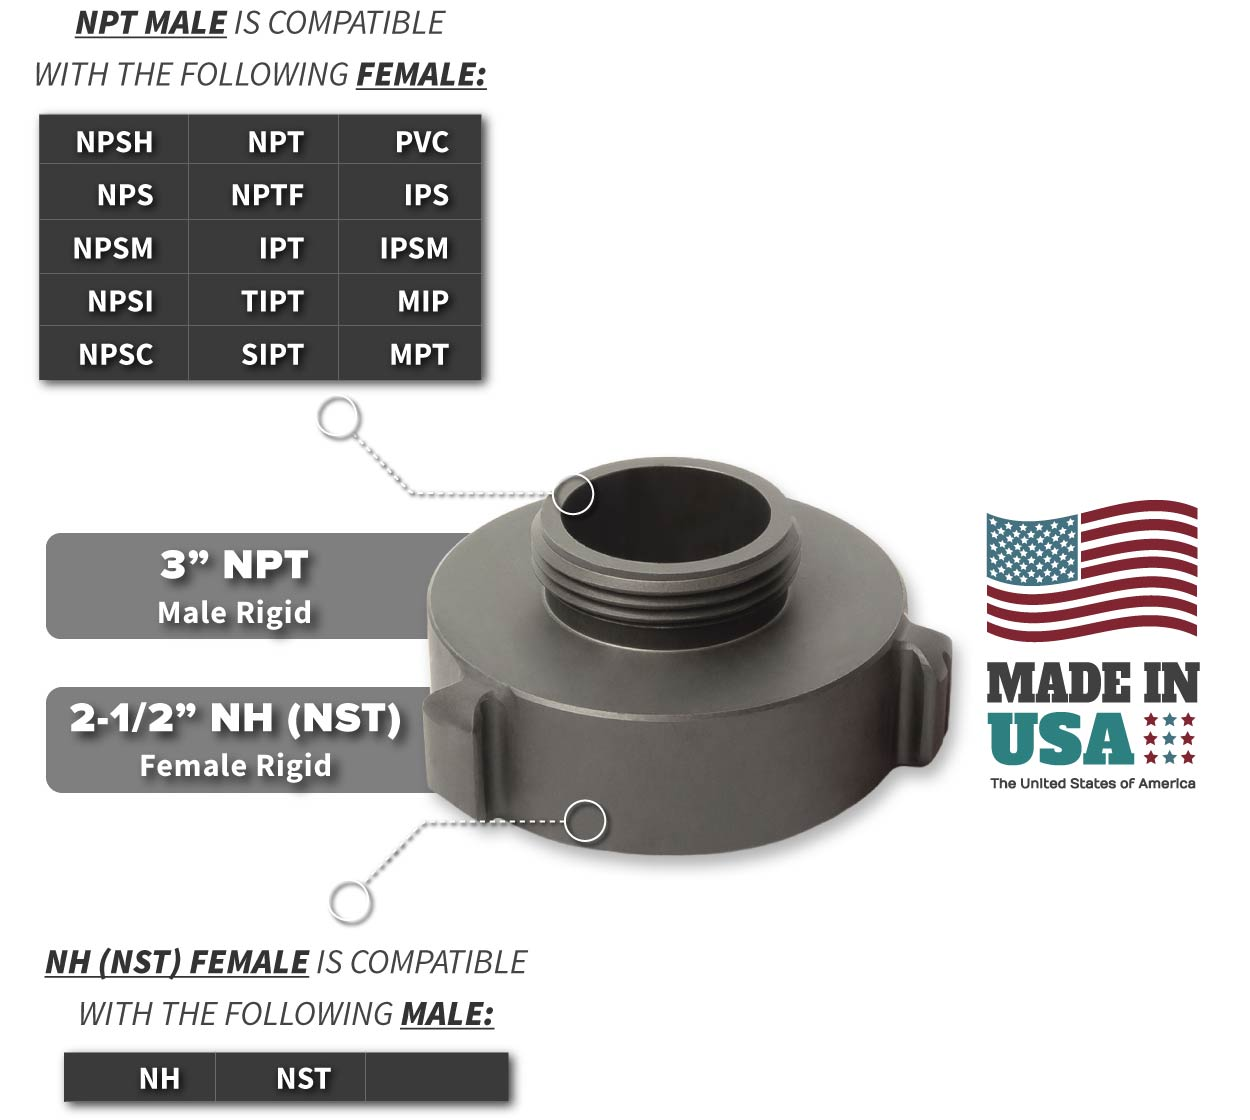 2.5 Inch NH-NST Female x 3 Inch NPT Male Compatibility Thread Chart